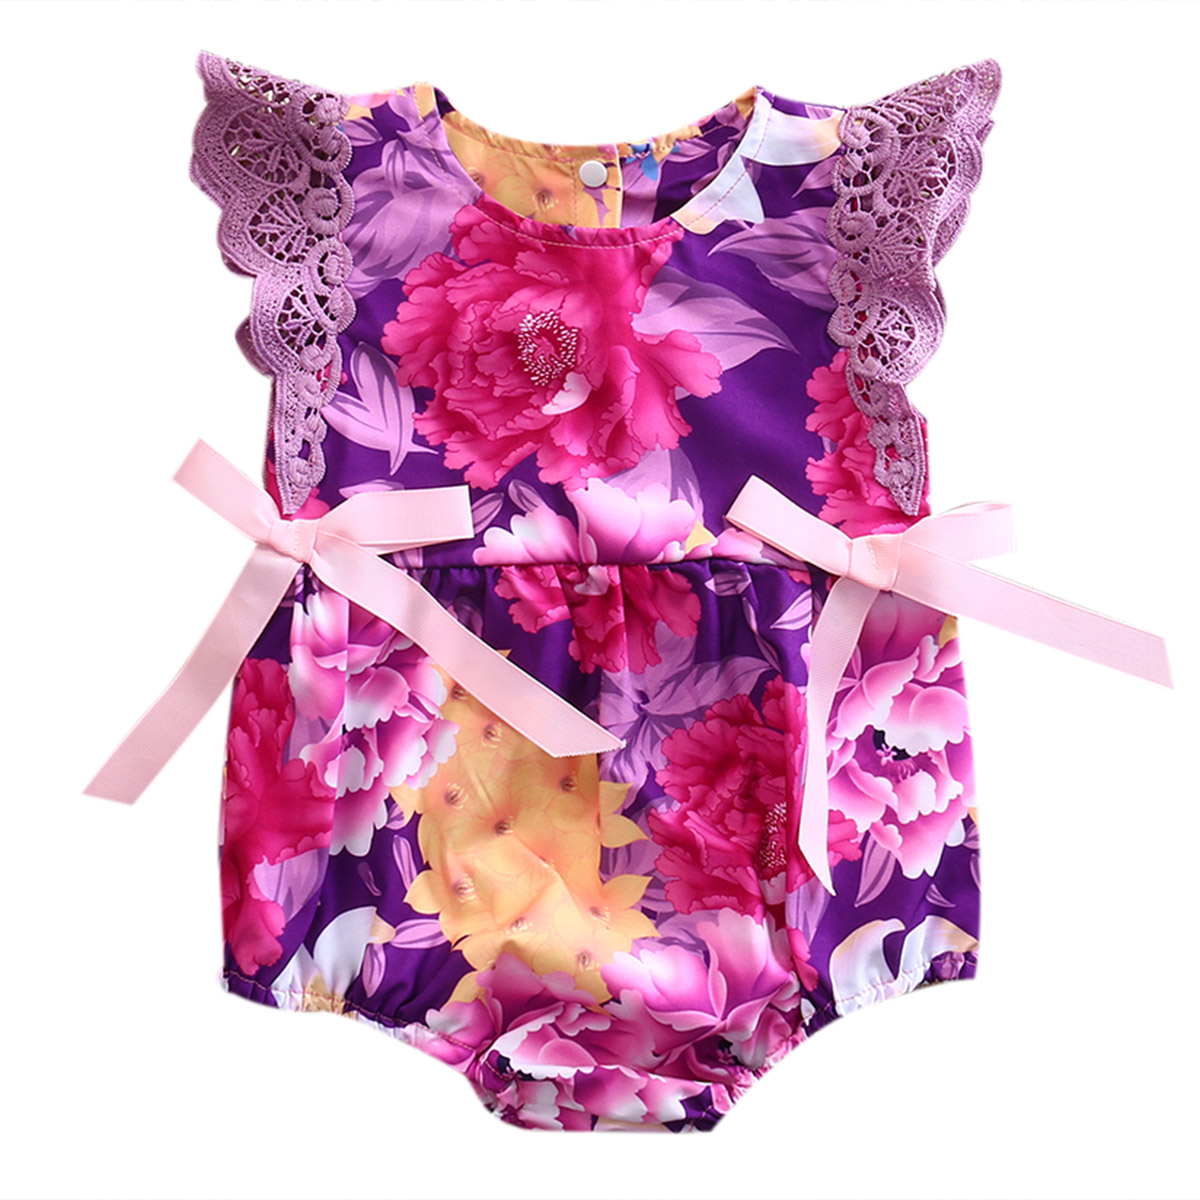 Cute Newborn Baby Girl Lace Floral Romper 2017 Summer Infant Bebes Toddler Kids Jumpsuit Outfits Sunsuit Children Clothes 0-24M cute newborn baby girls clothes floral infant bebes romper cotton jumpsuit one pieces outfit sunsuit 0 18m